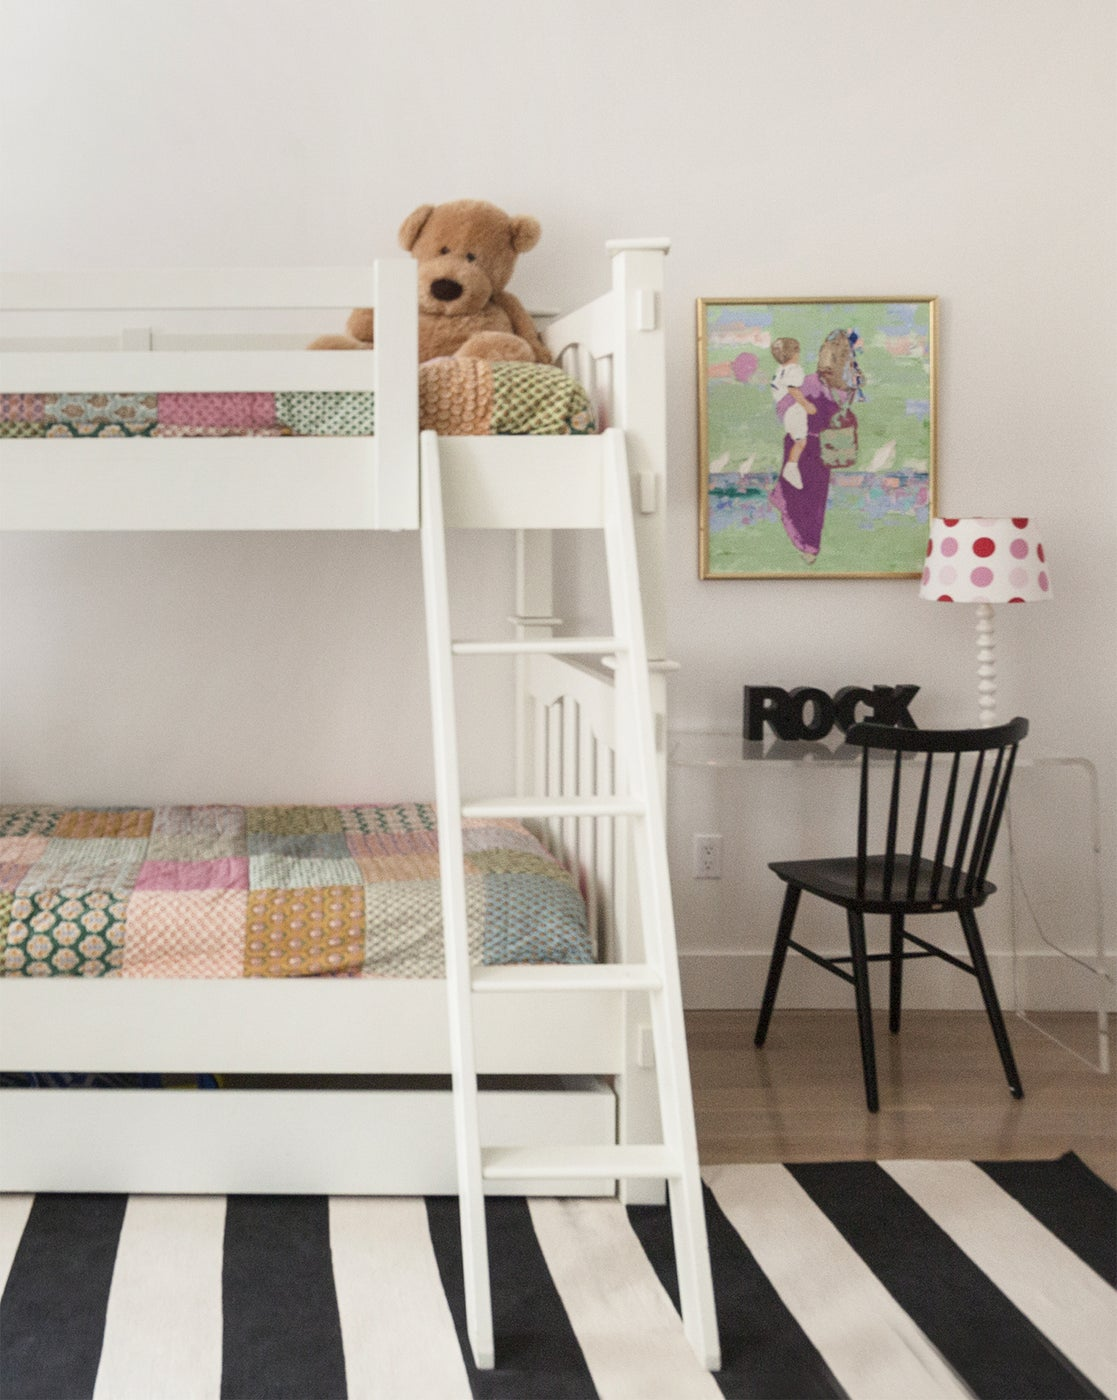 Twin bunk beds in children's bedroom.